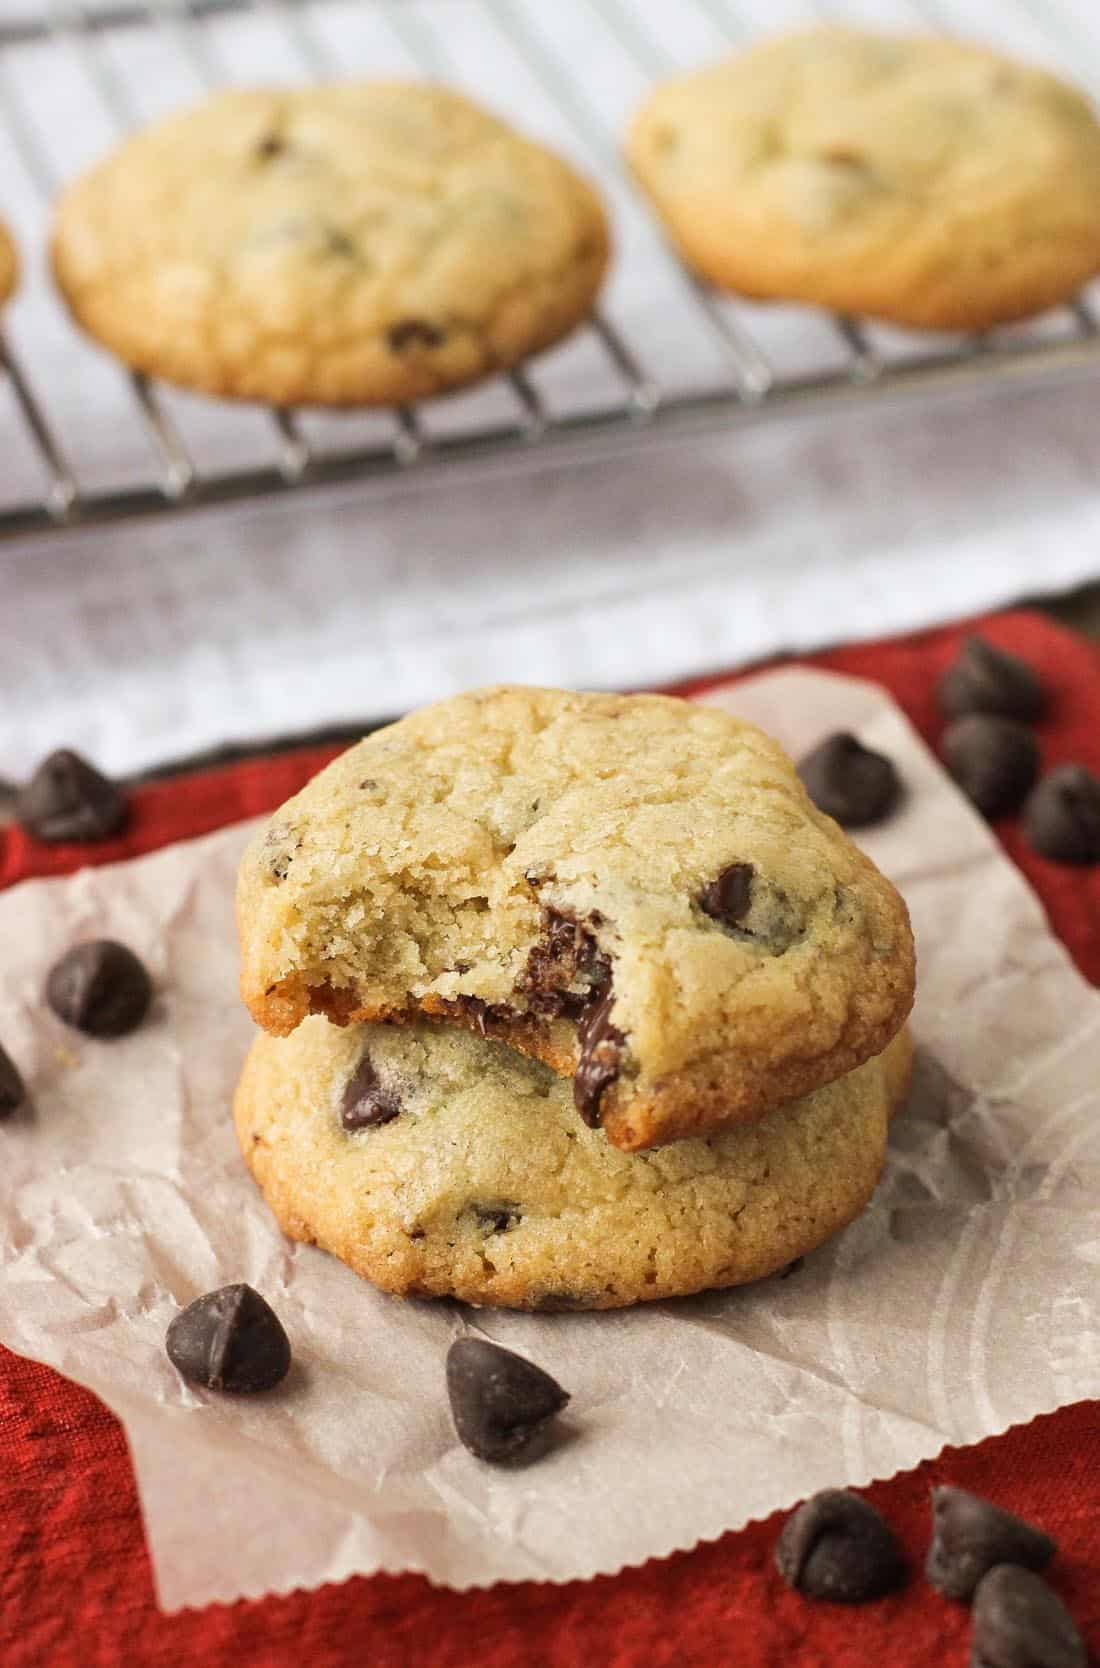 It's simple to make homemade break and bake cookies that you can make directly from the fridge or freezer! Customize the add ins to use your favorite chips, dried fruit, candy, and more! mysequinedlife.com